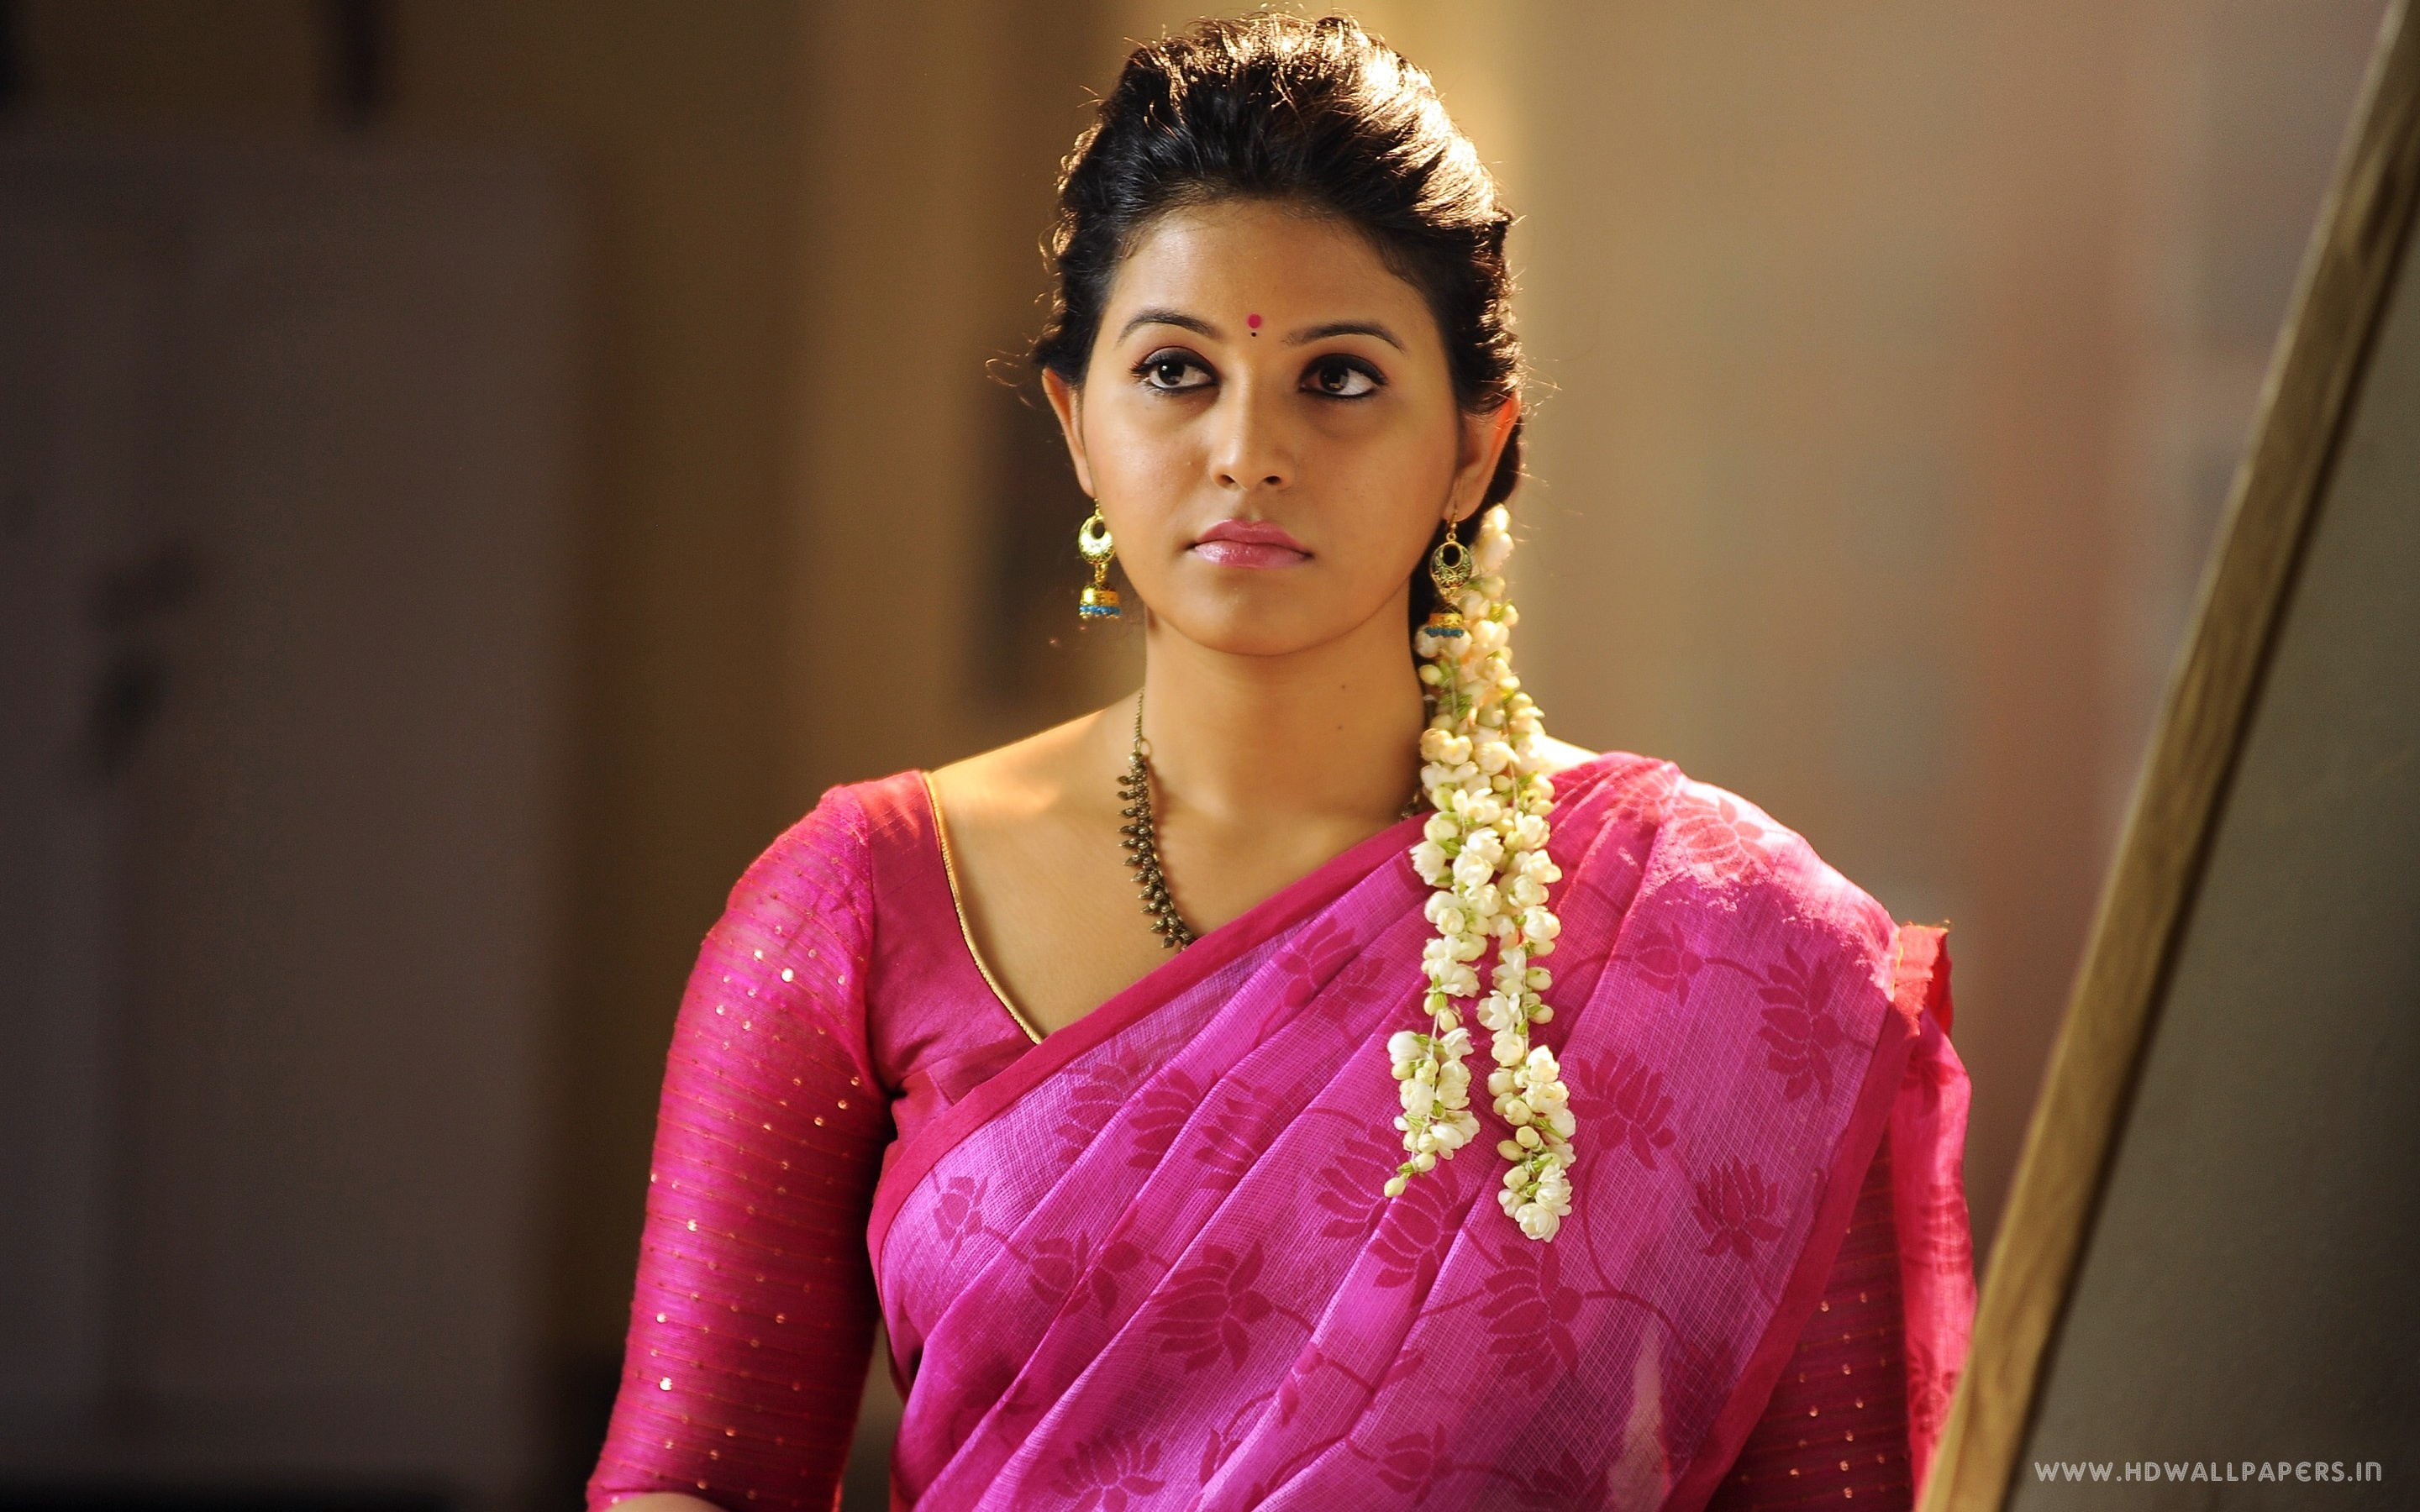 Actor Anjali Photos: Tamil Actress Anjali Wallpapers In Jpg Format For Free